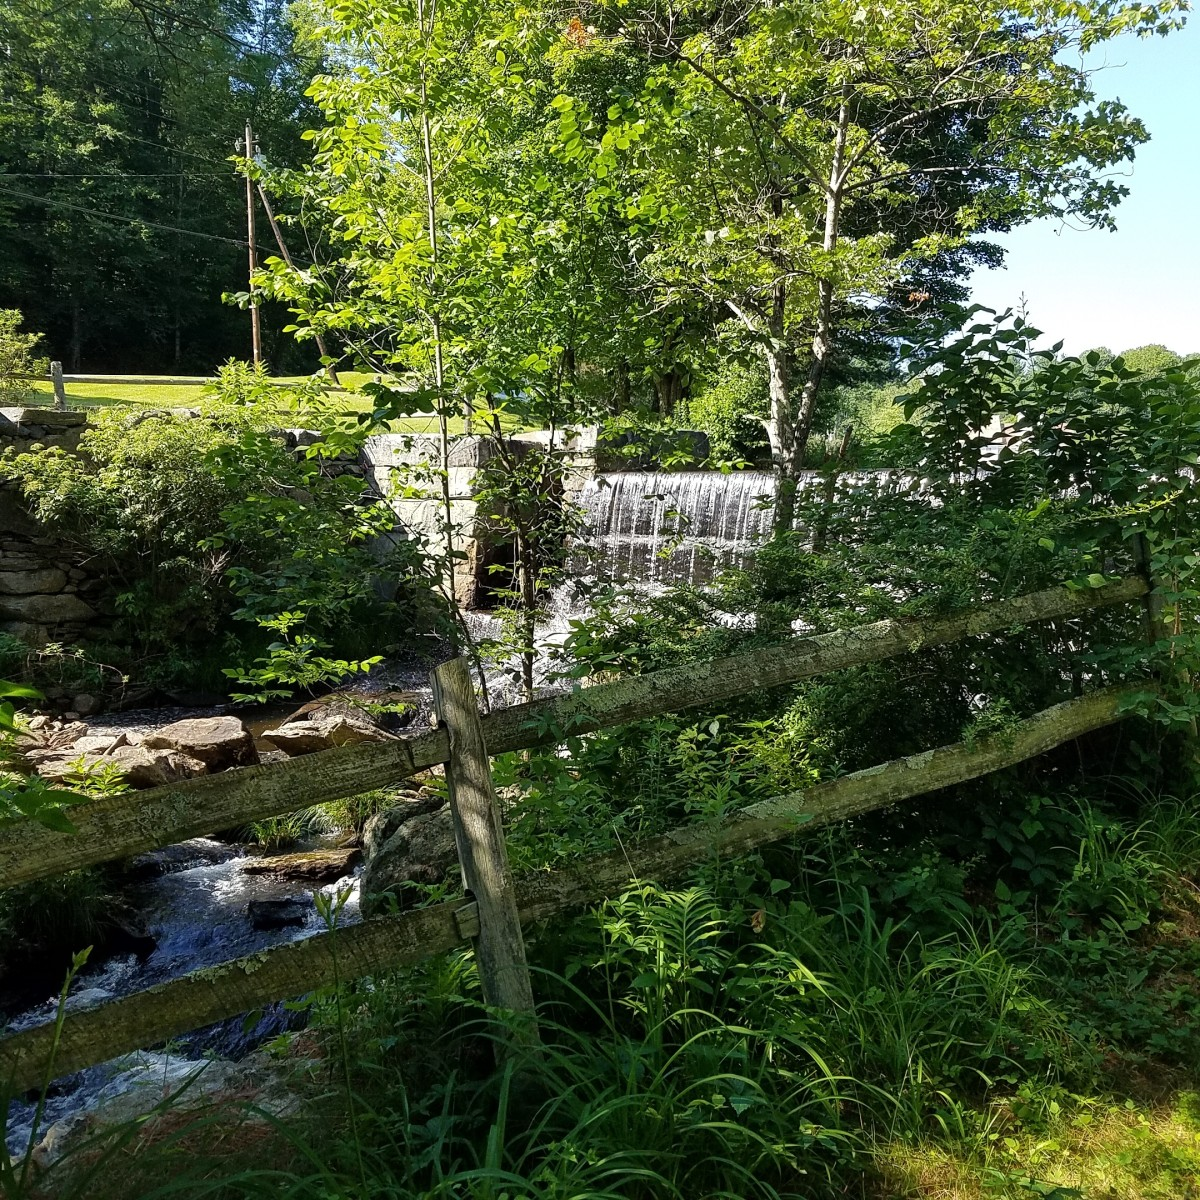 Waterfall at the entrance to the Rowe Camp and Conference Center in the Berkshires (MA)   A healthy dose of greens to eat and spending time in nature are both good for body and soul!